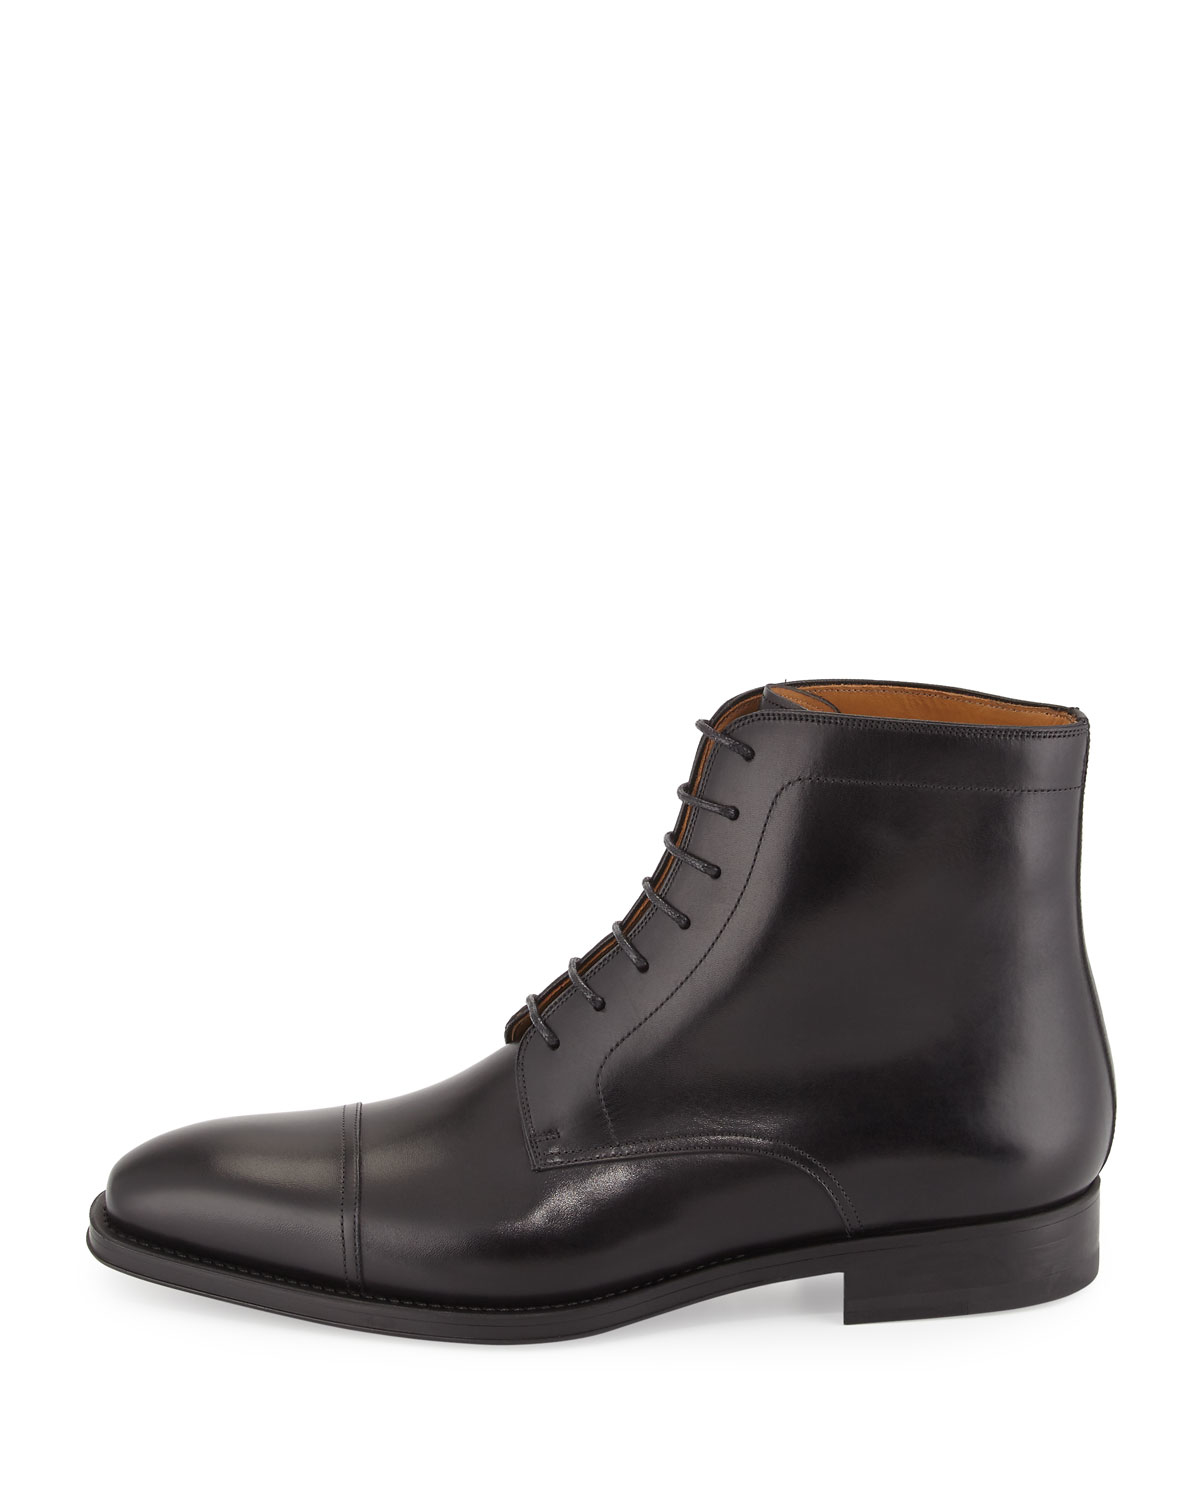 neiman leather cap toe ankle boot in black for